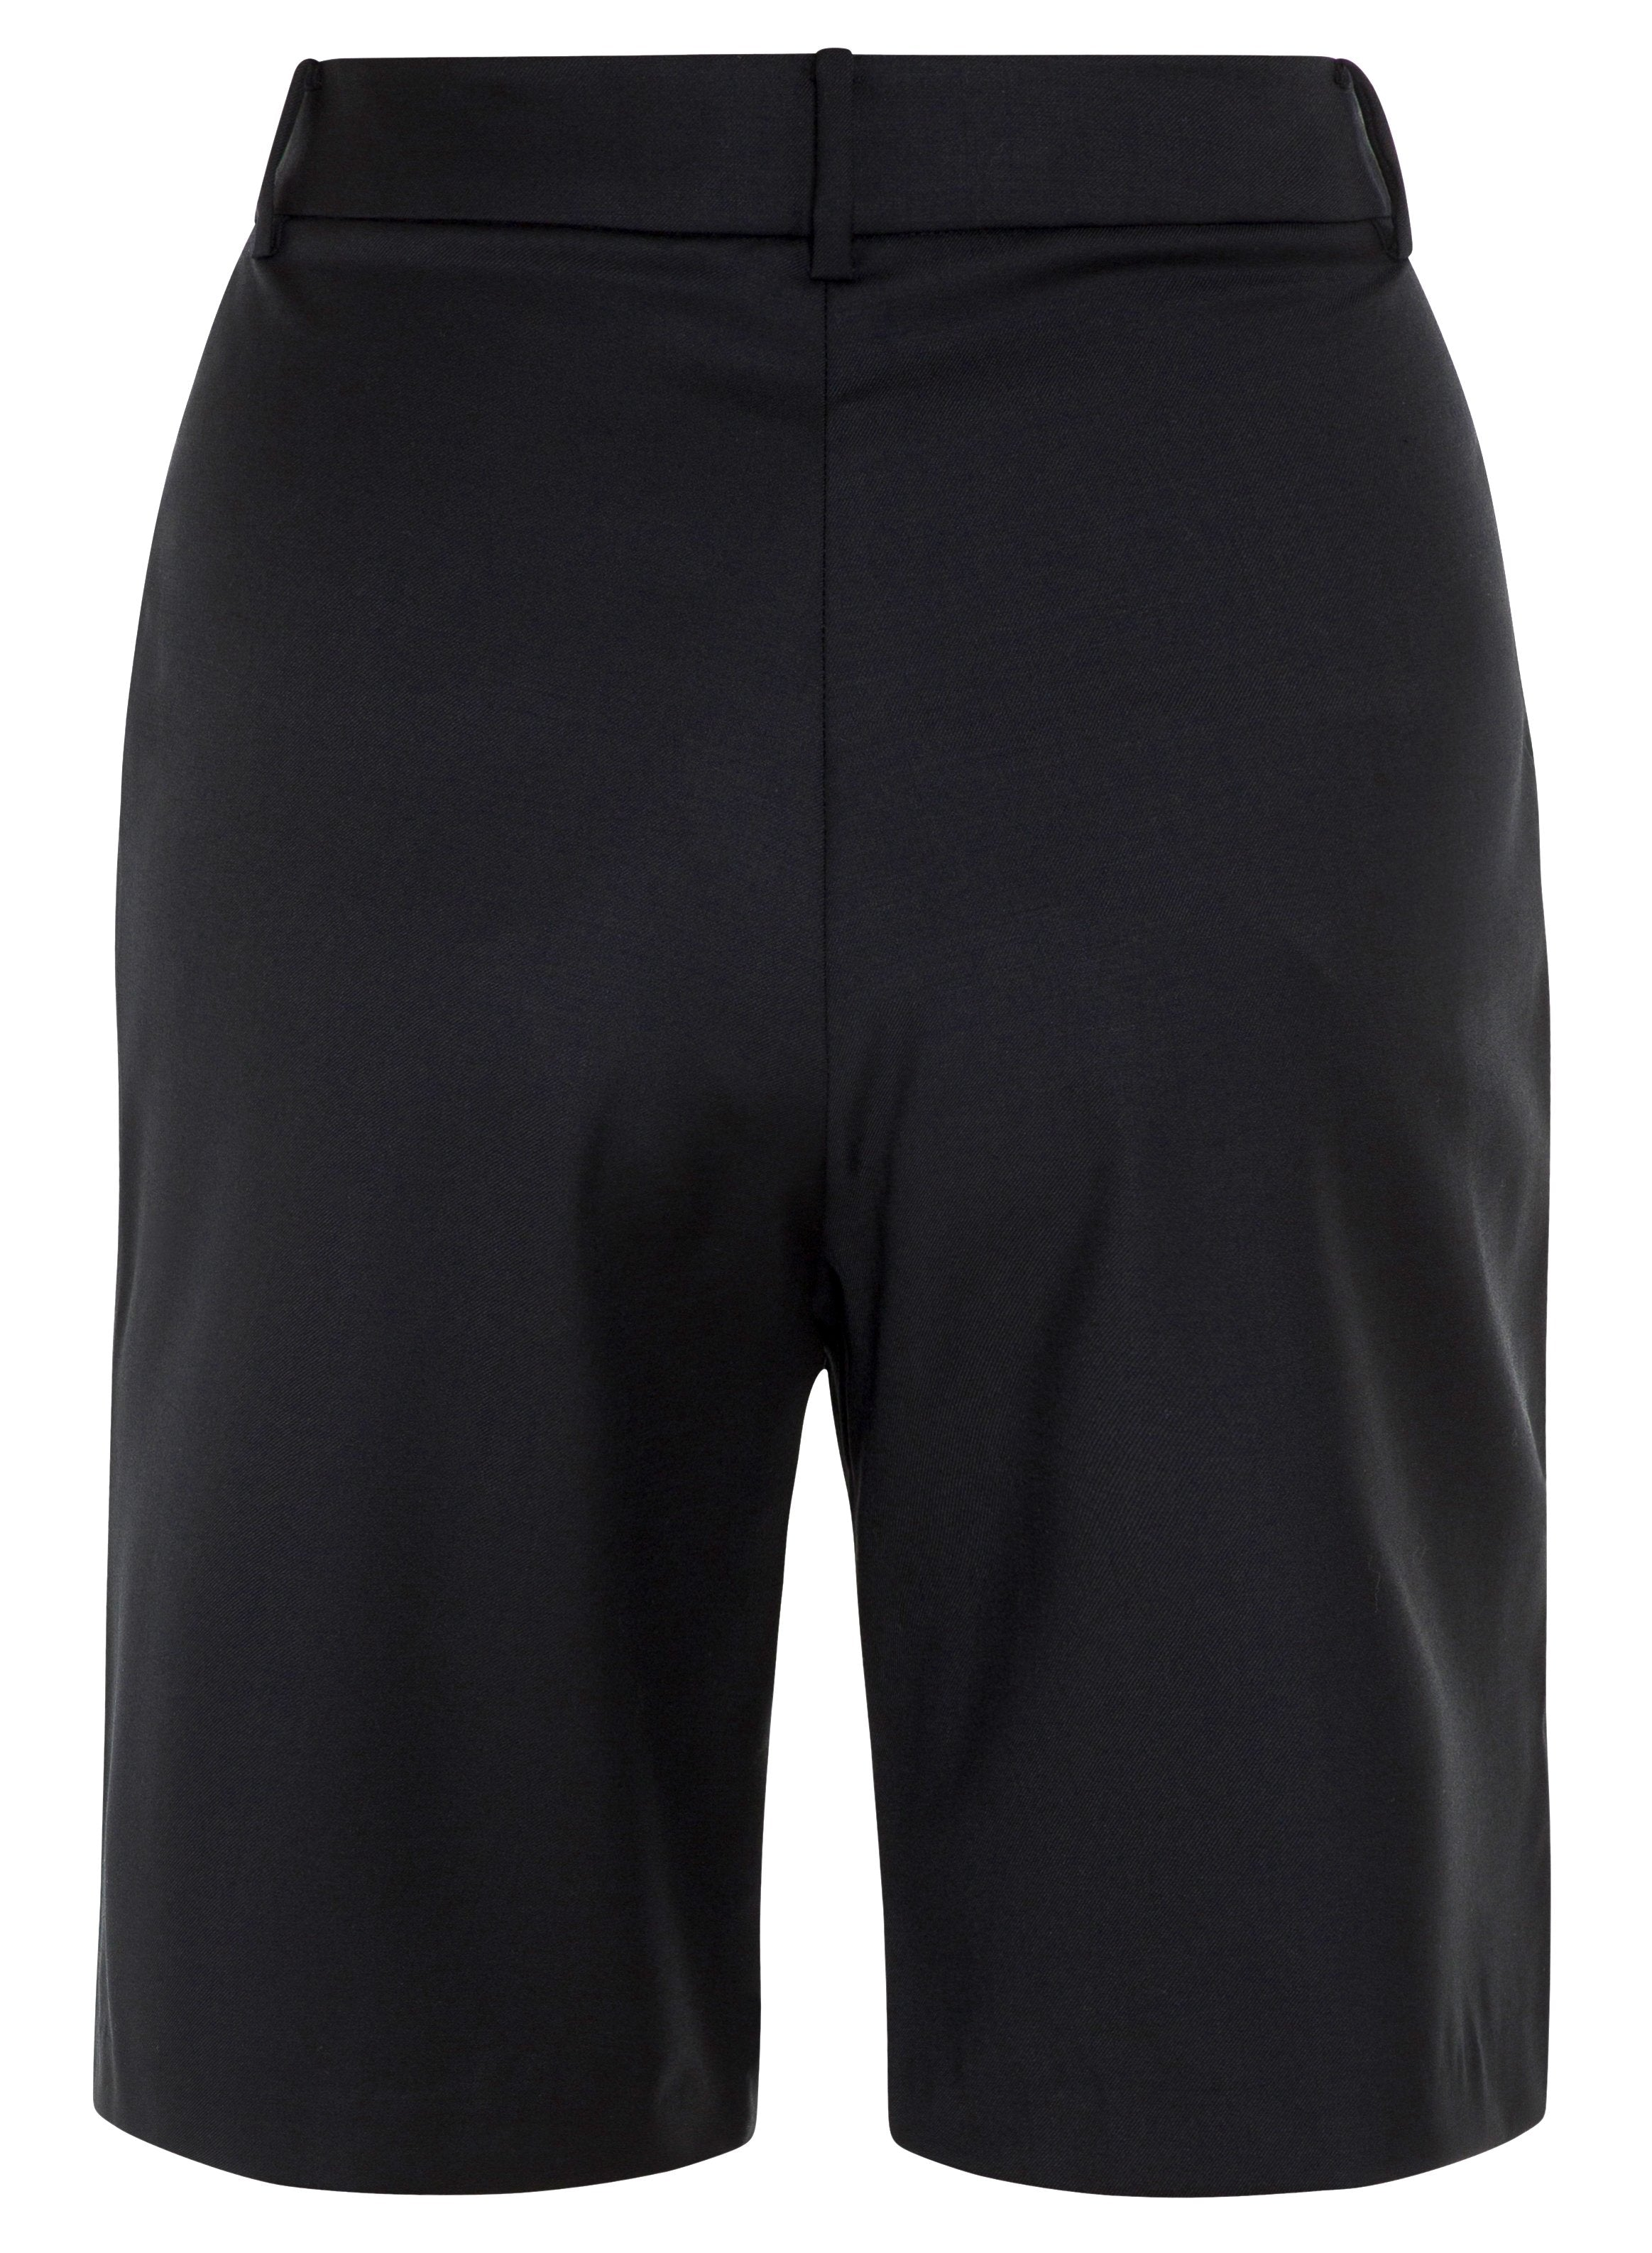 PATSY short (BLACK)